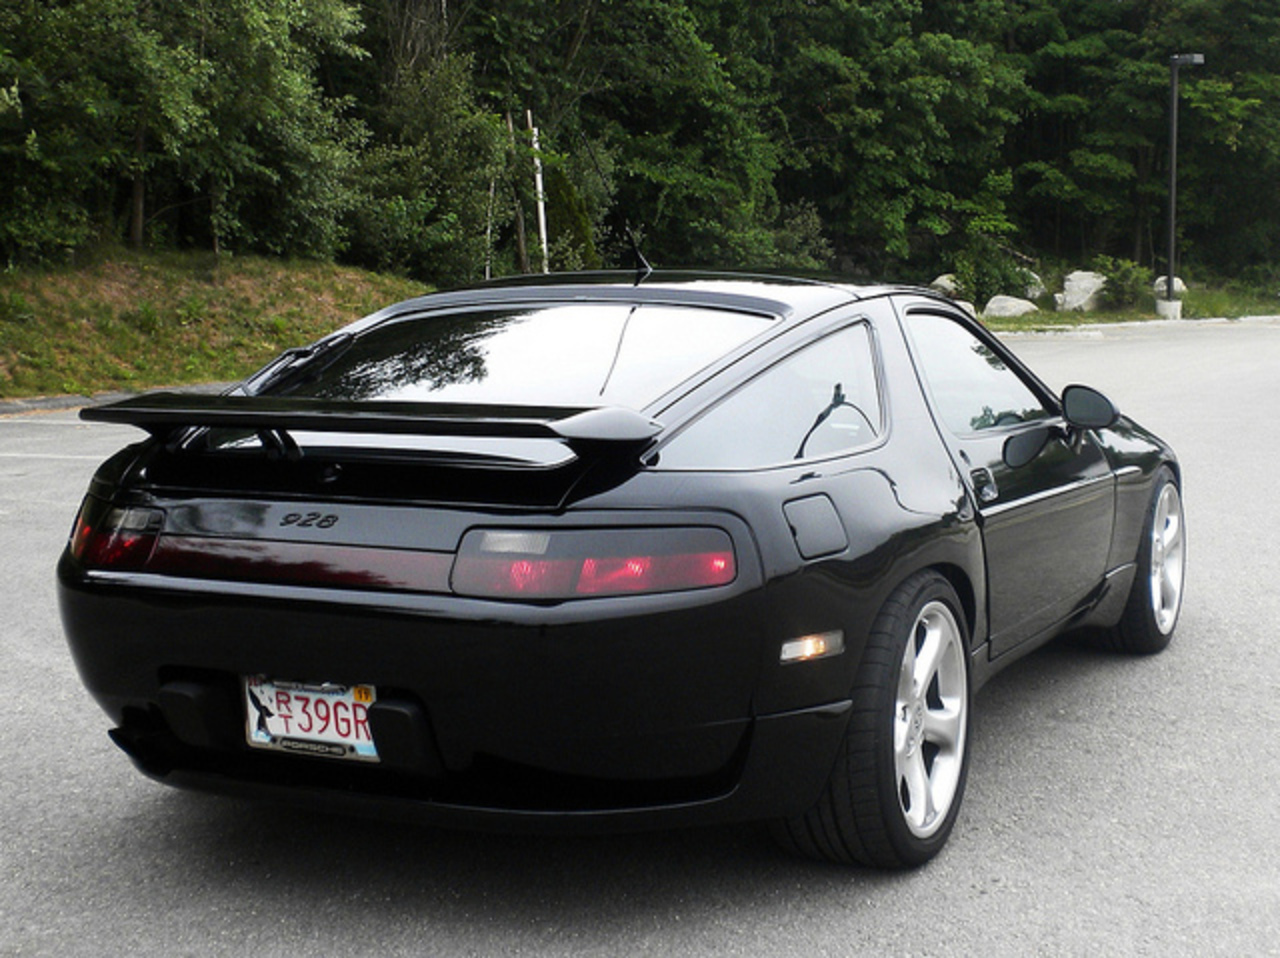 Nicely Tuned Porsche 928 GTS | Flickr - Photo Sharing!